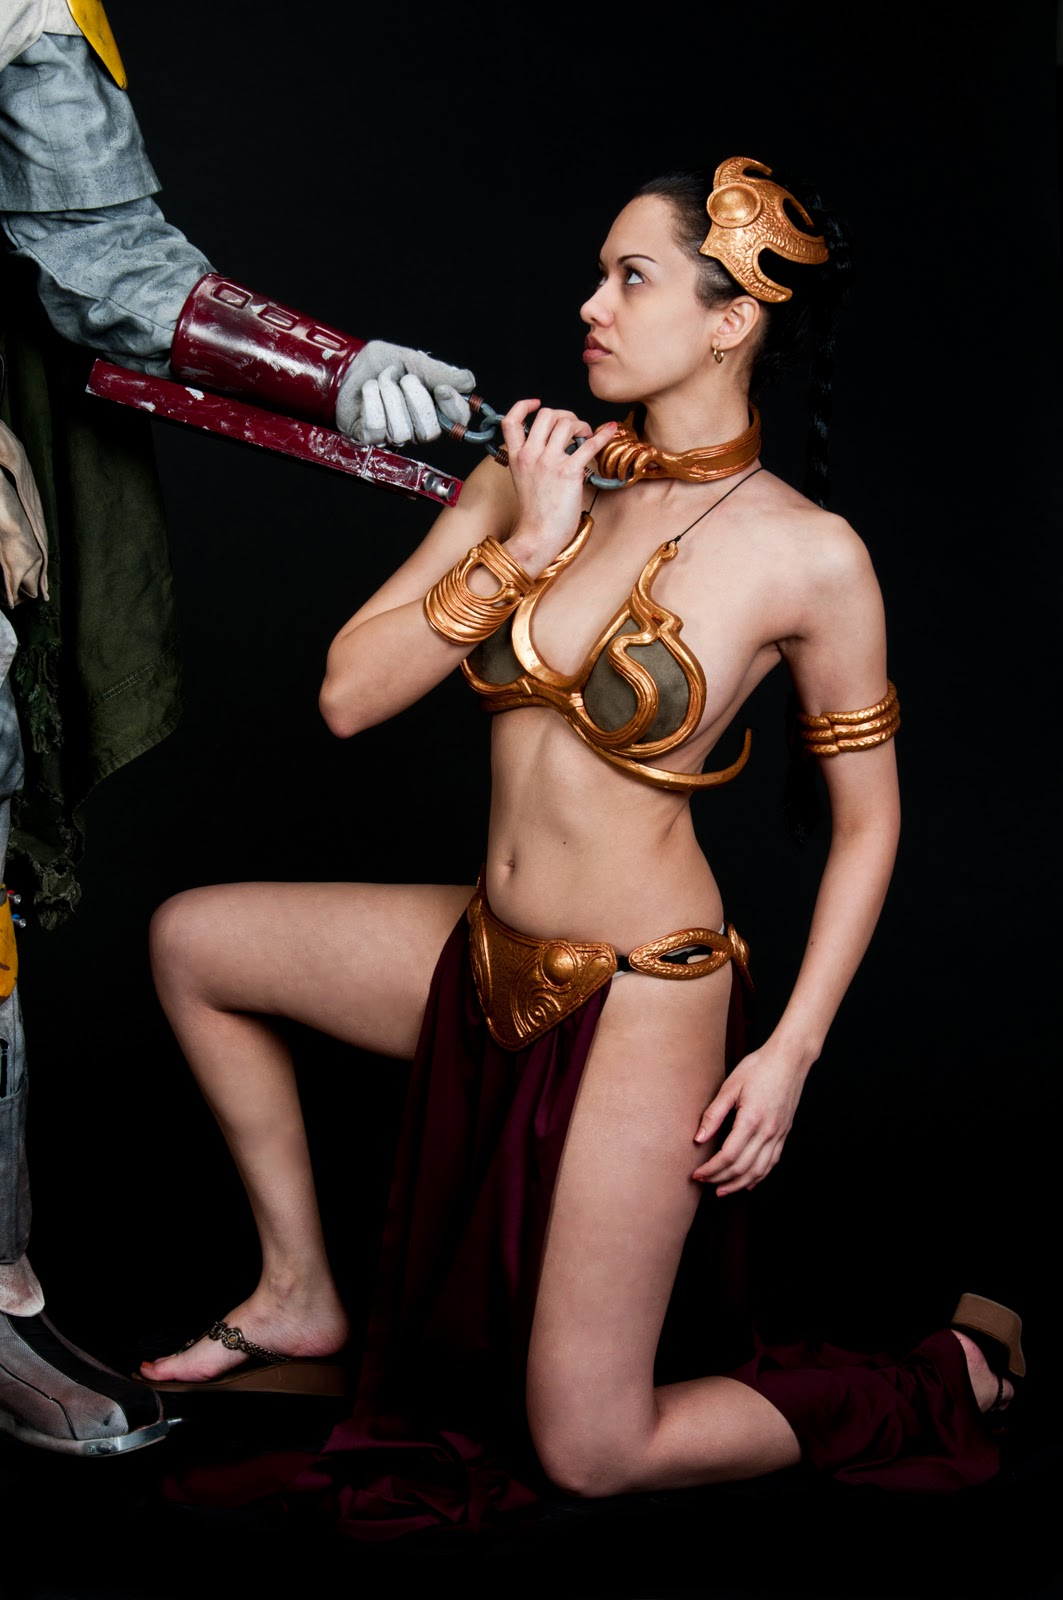 slave princess leia girl wars cosplay Star